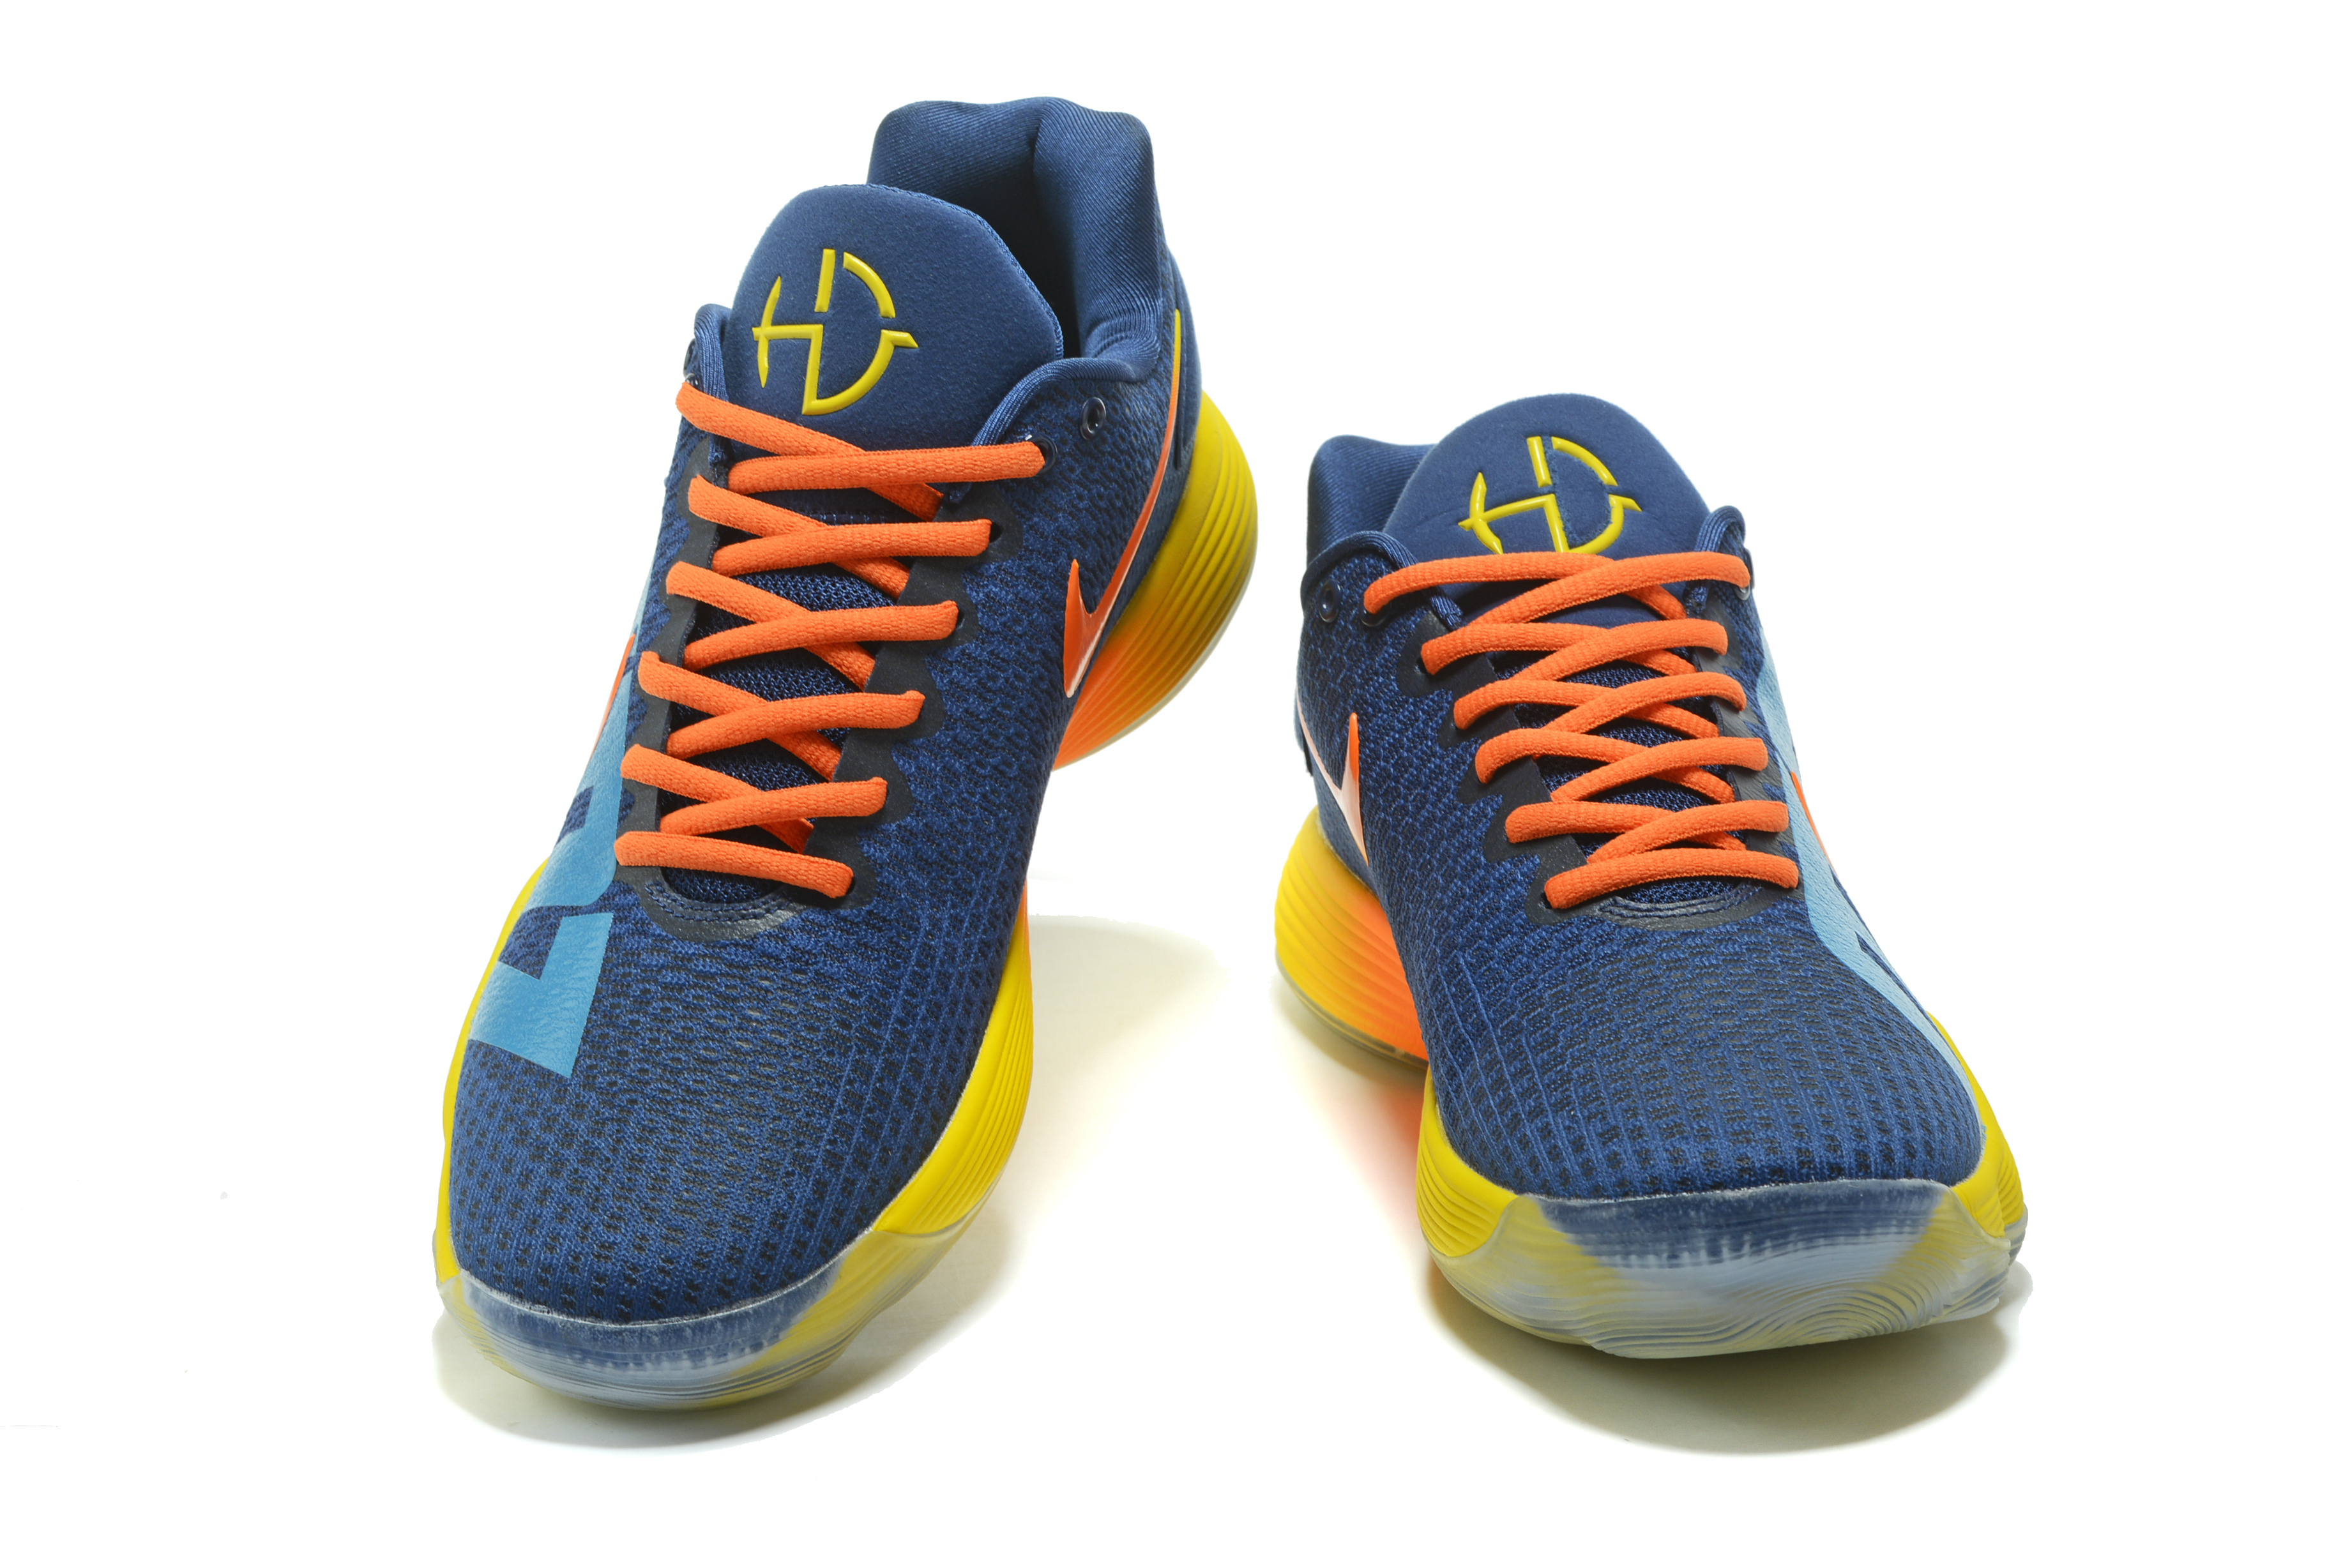 Special Nike Hyperdunk 2017 City Of Mardrid Basketball Shoes